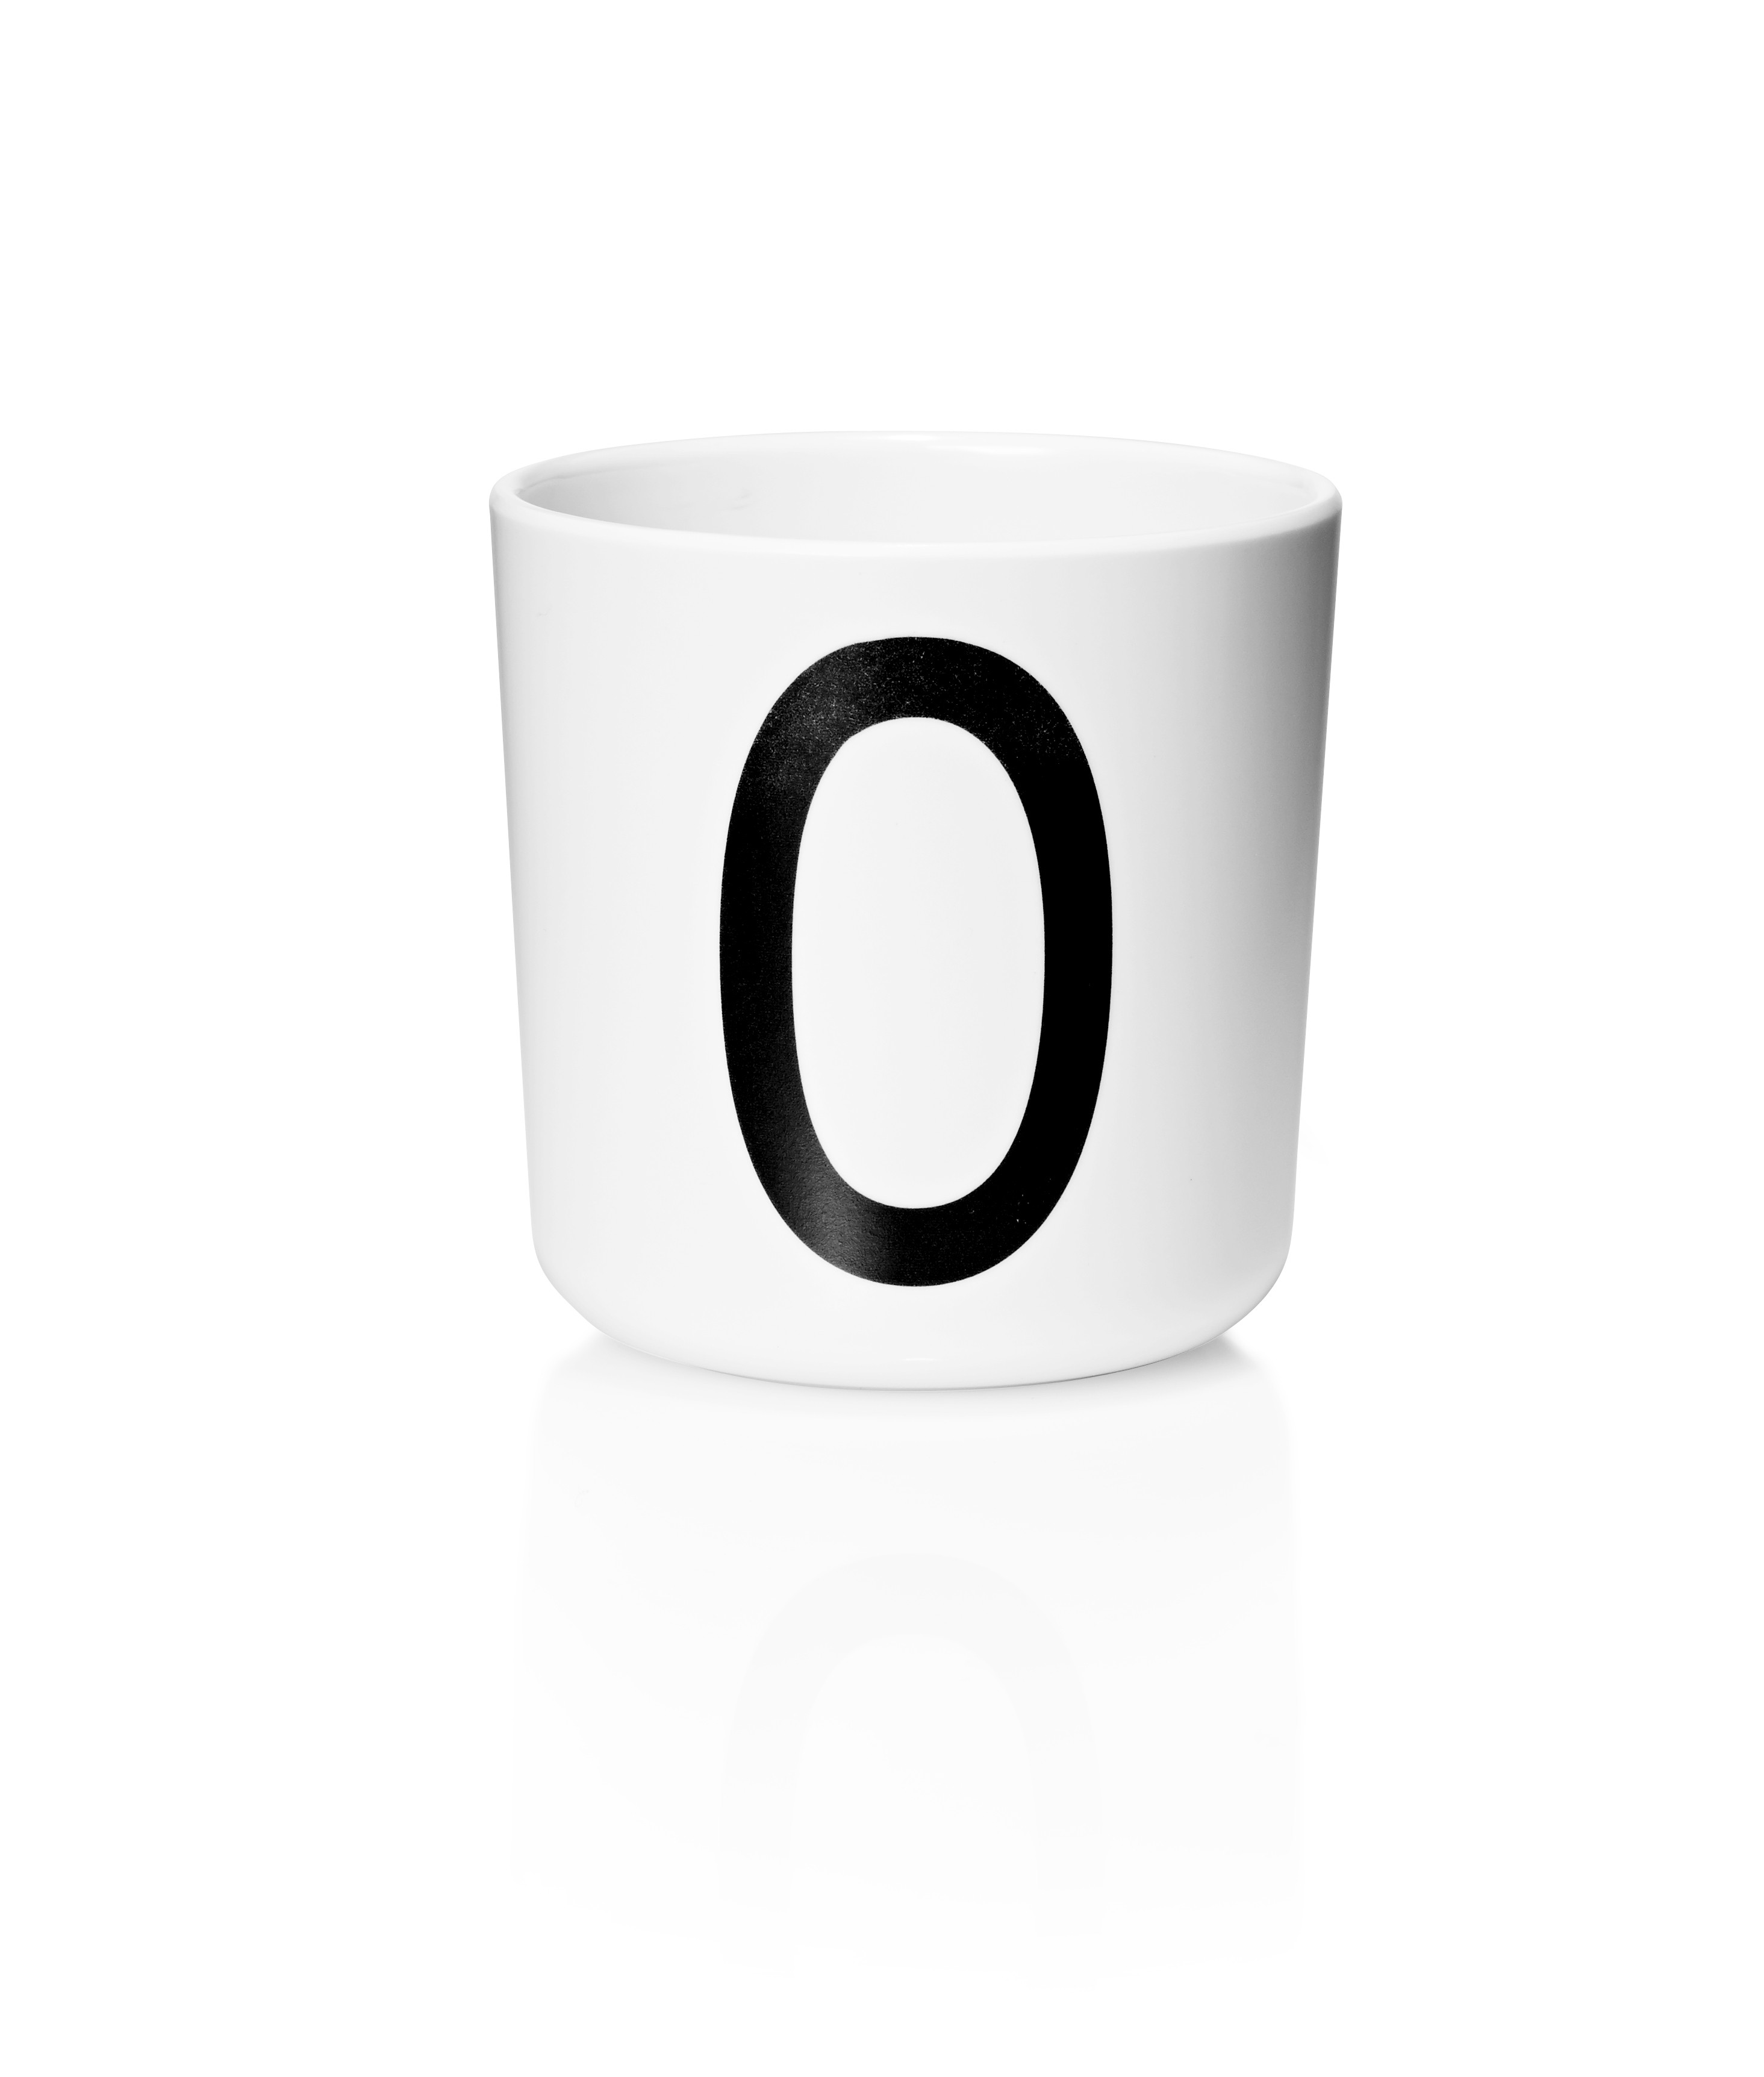 Tasse Mélamine - Lettre O - DESIGN LETTERS - Perlin Paon Paon